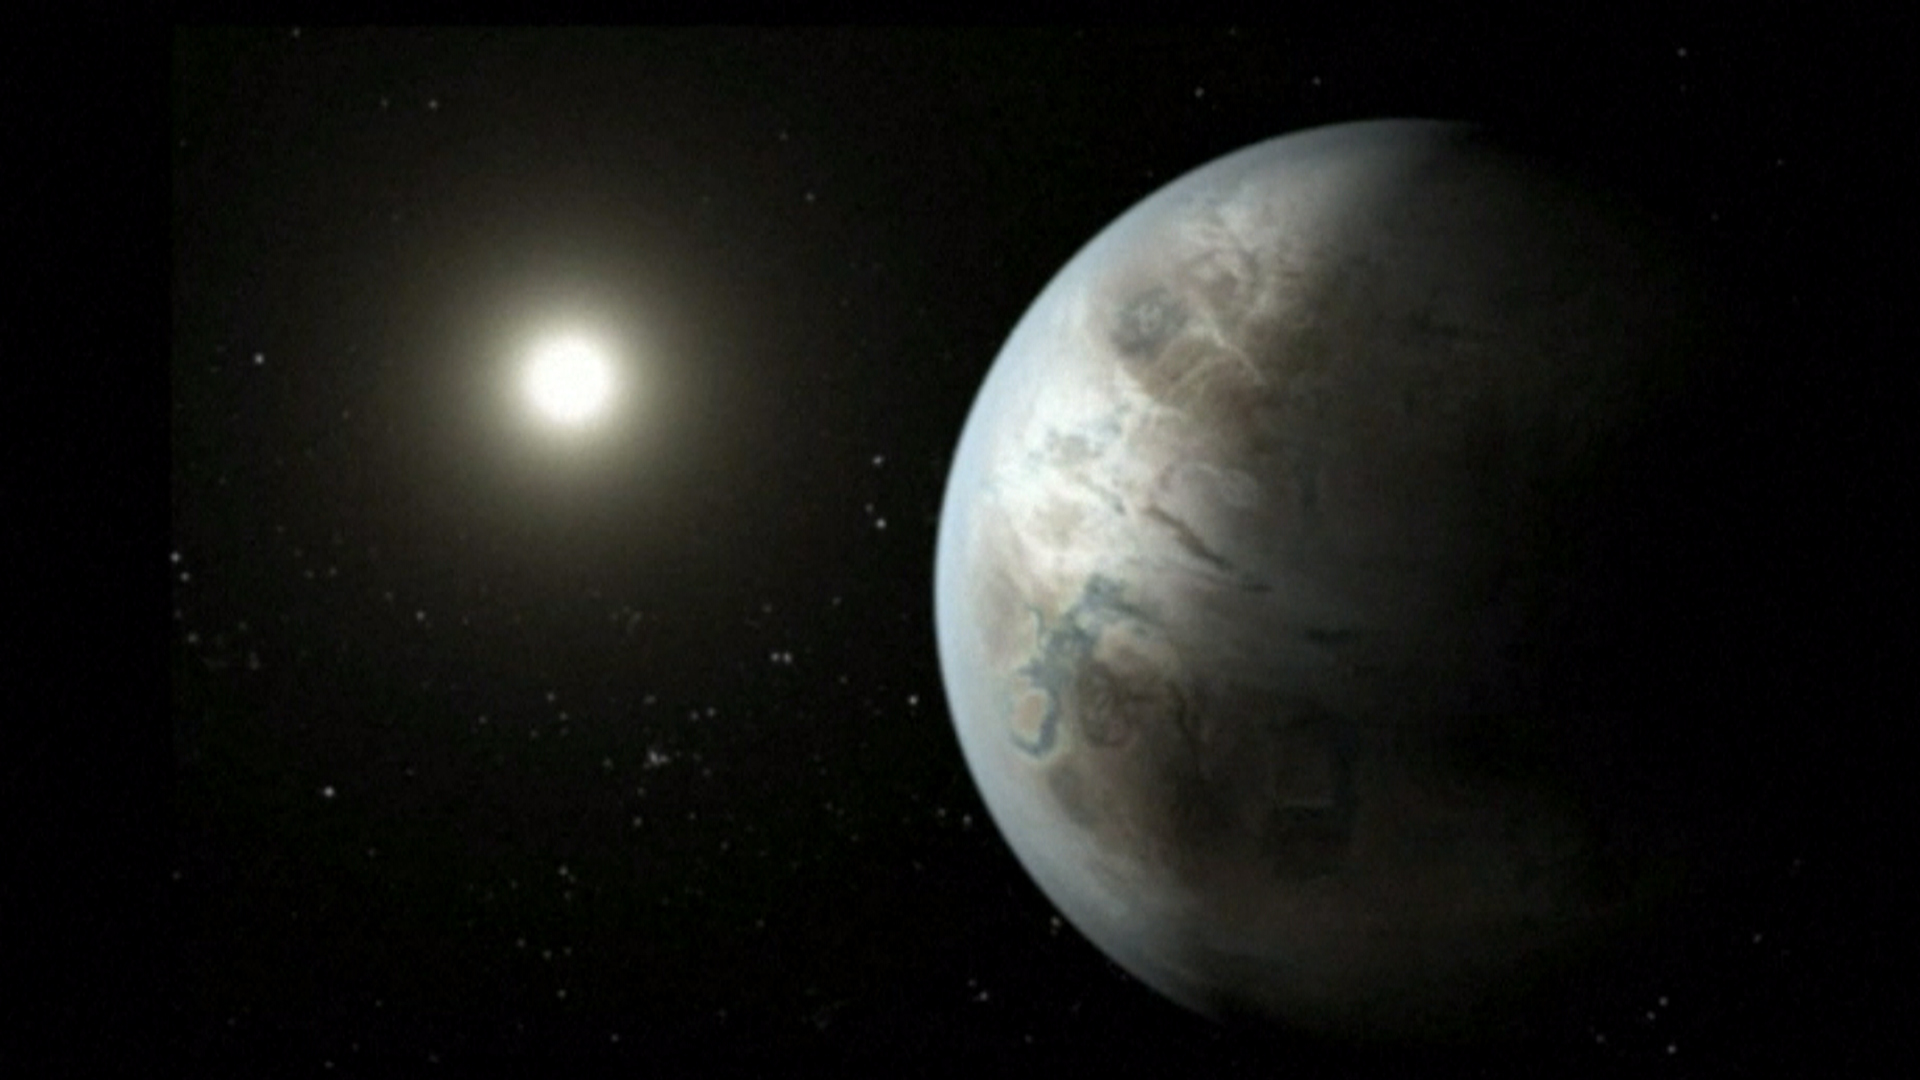 planet closest to earth now - photo #3